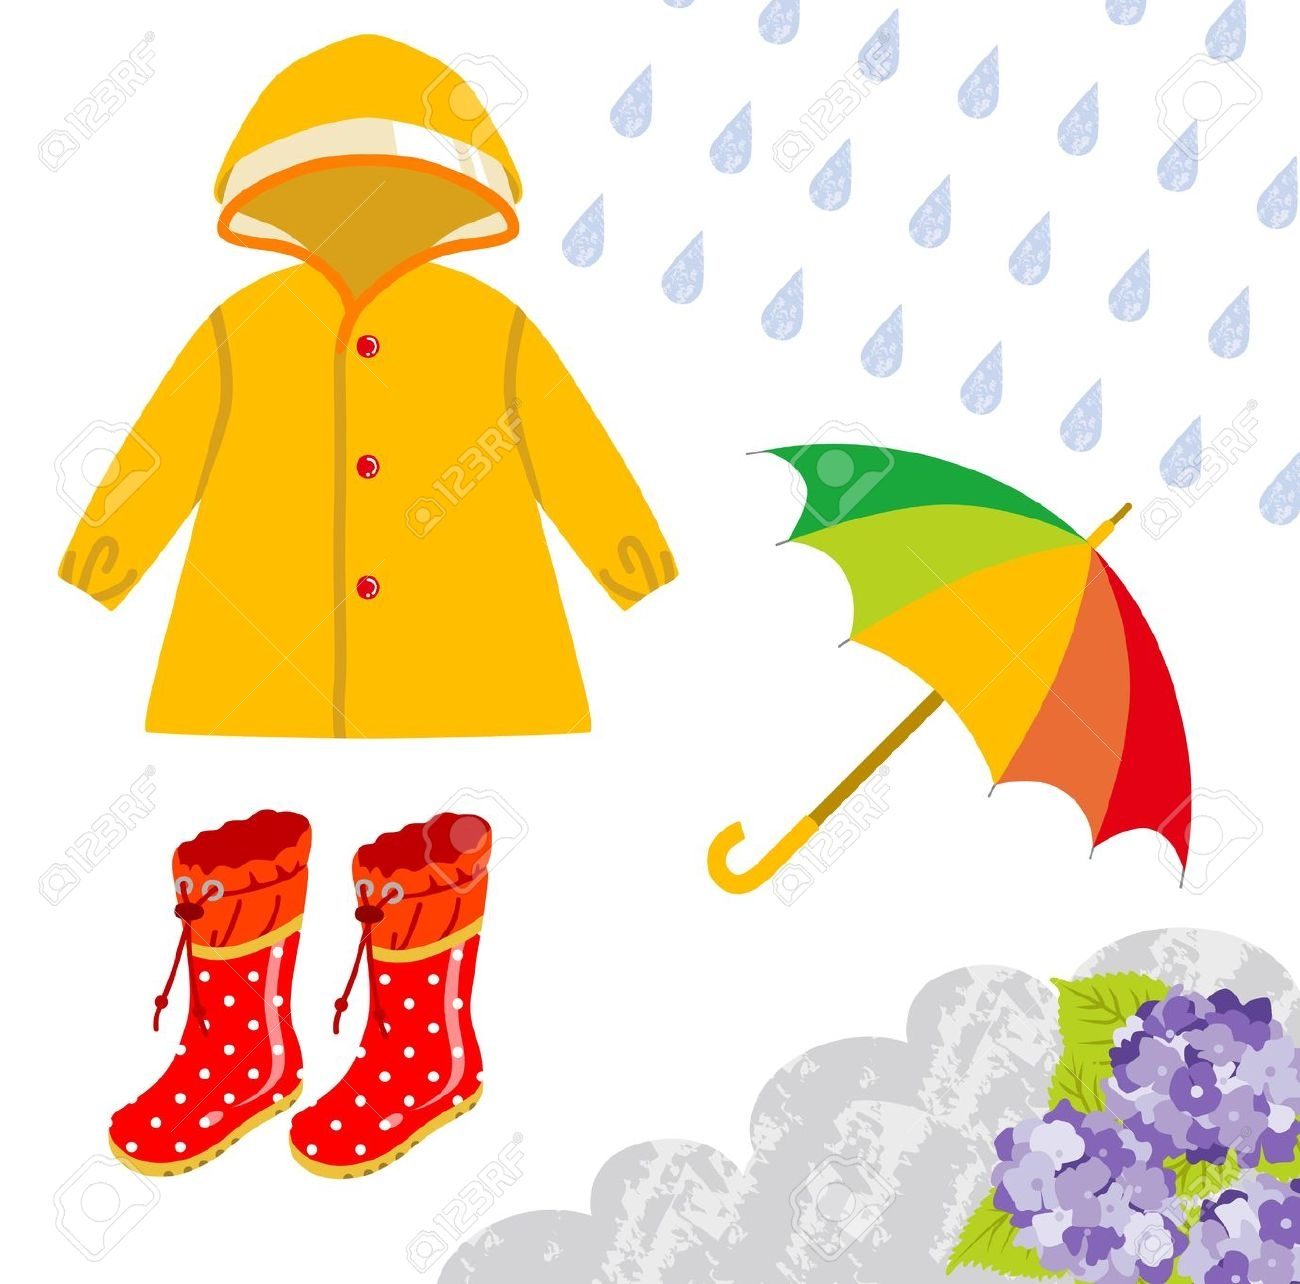 Rainy Season Clothes Clipart 10 Clipart Station